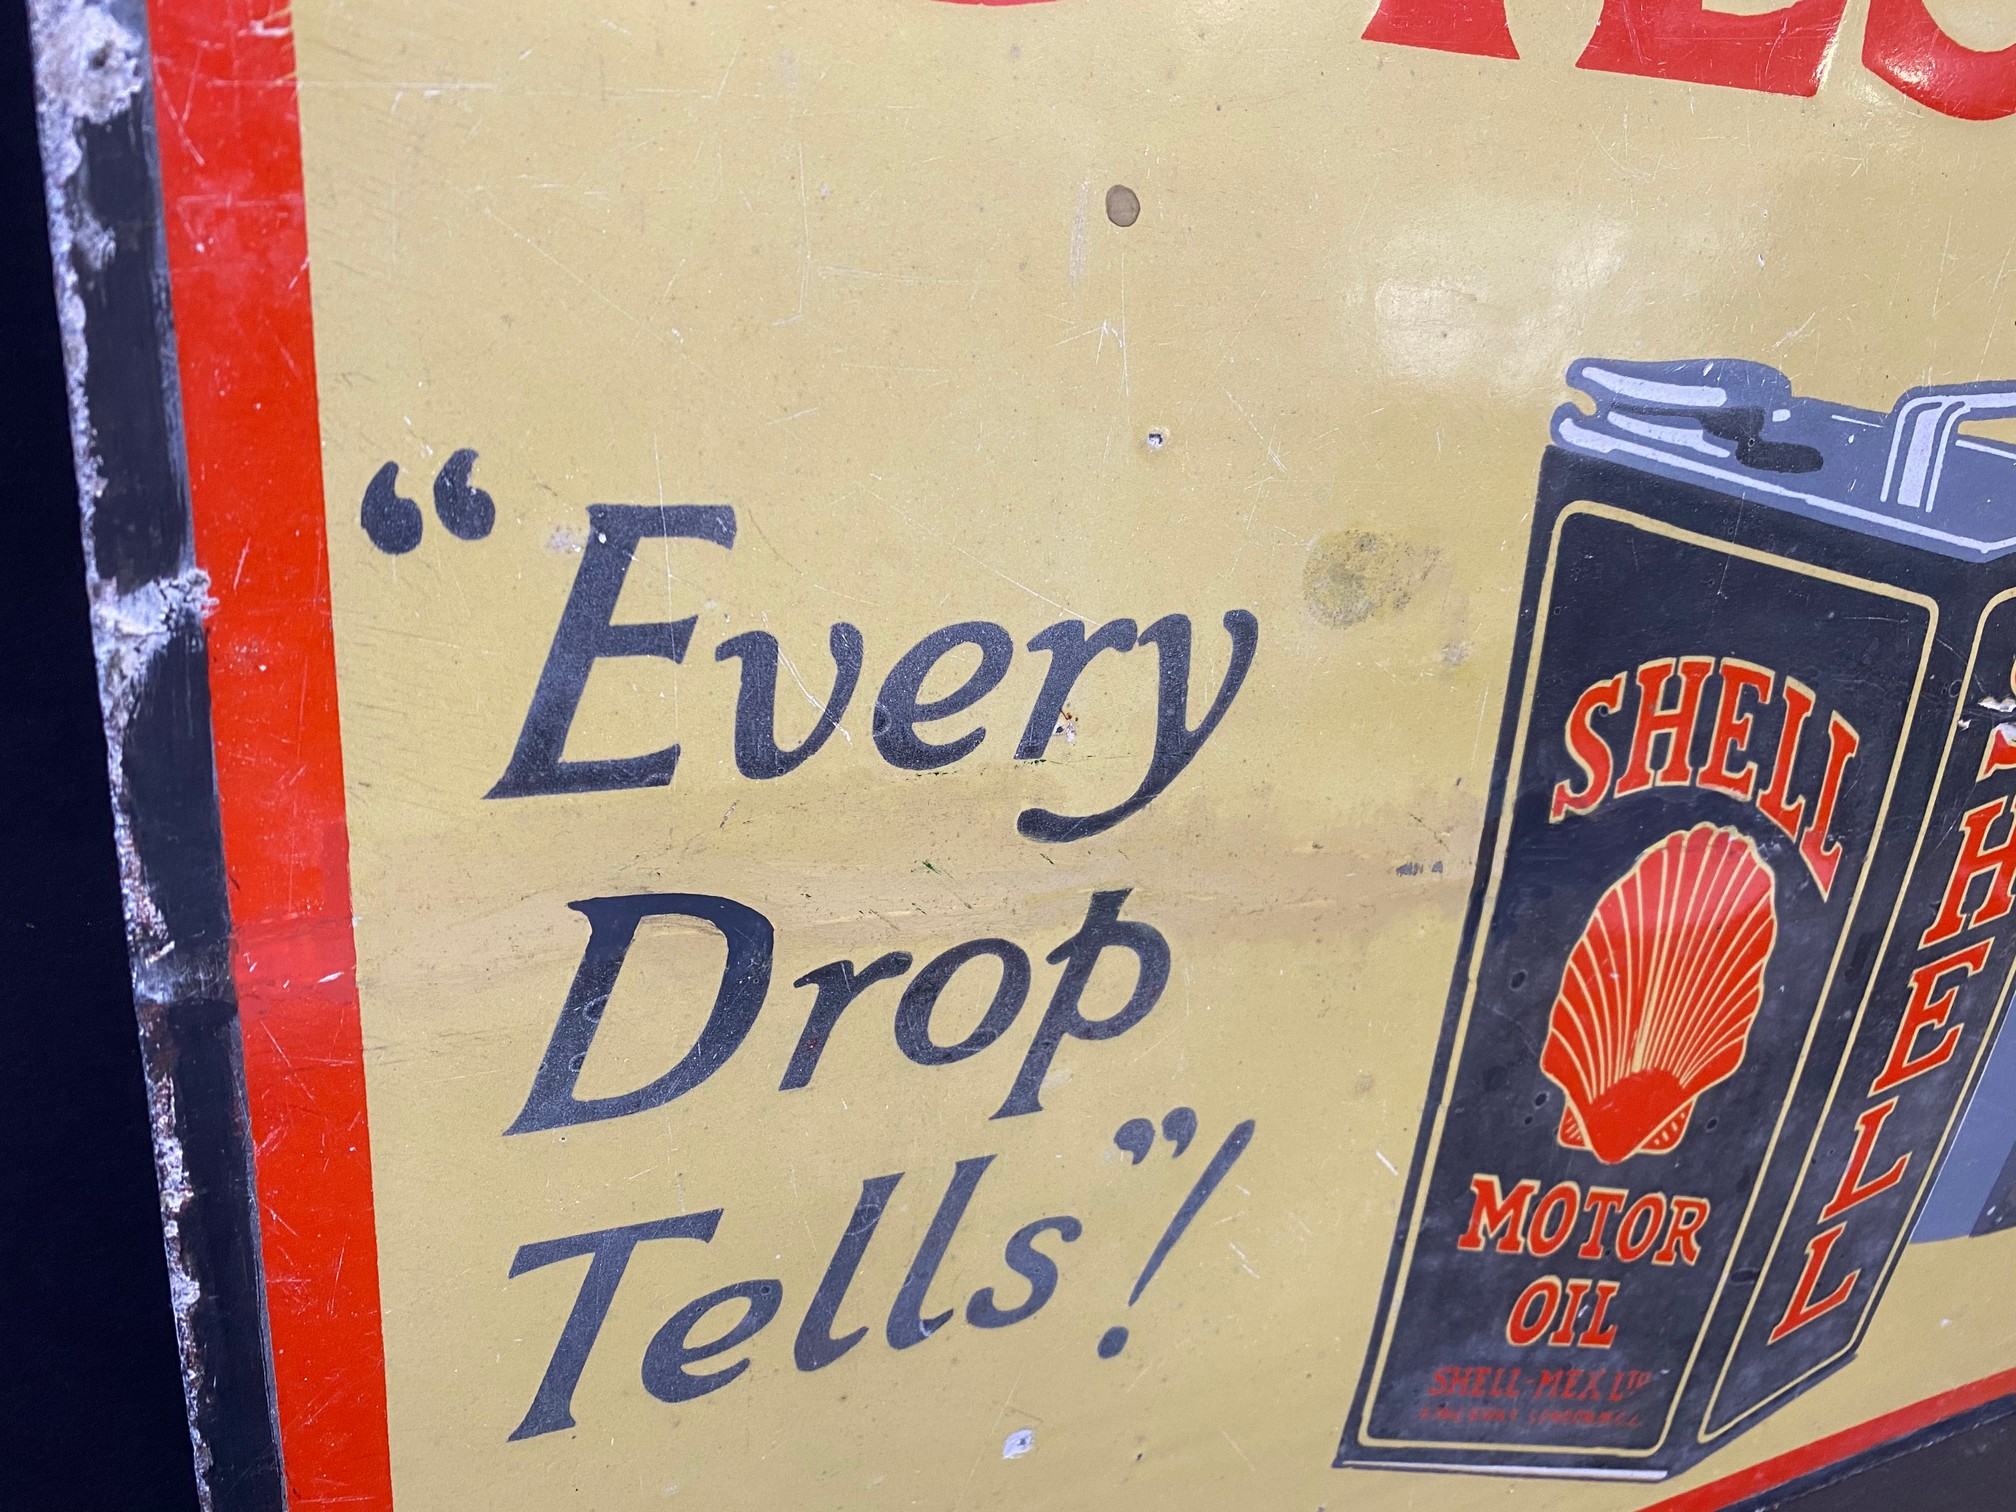 A Shell Lubricating Oils 'Every Drop Tells' pictorial enamel sign with some patches of - Image 6 of 8